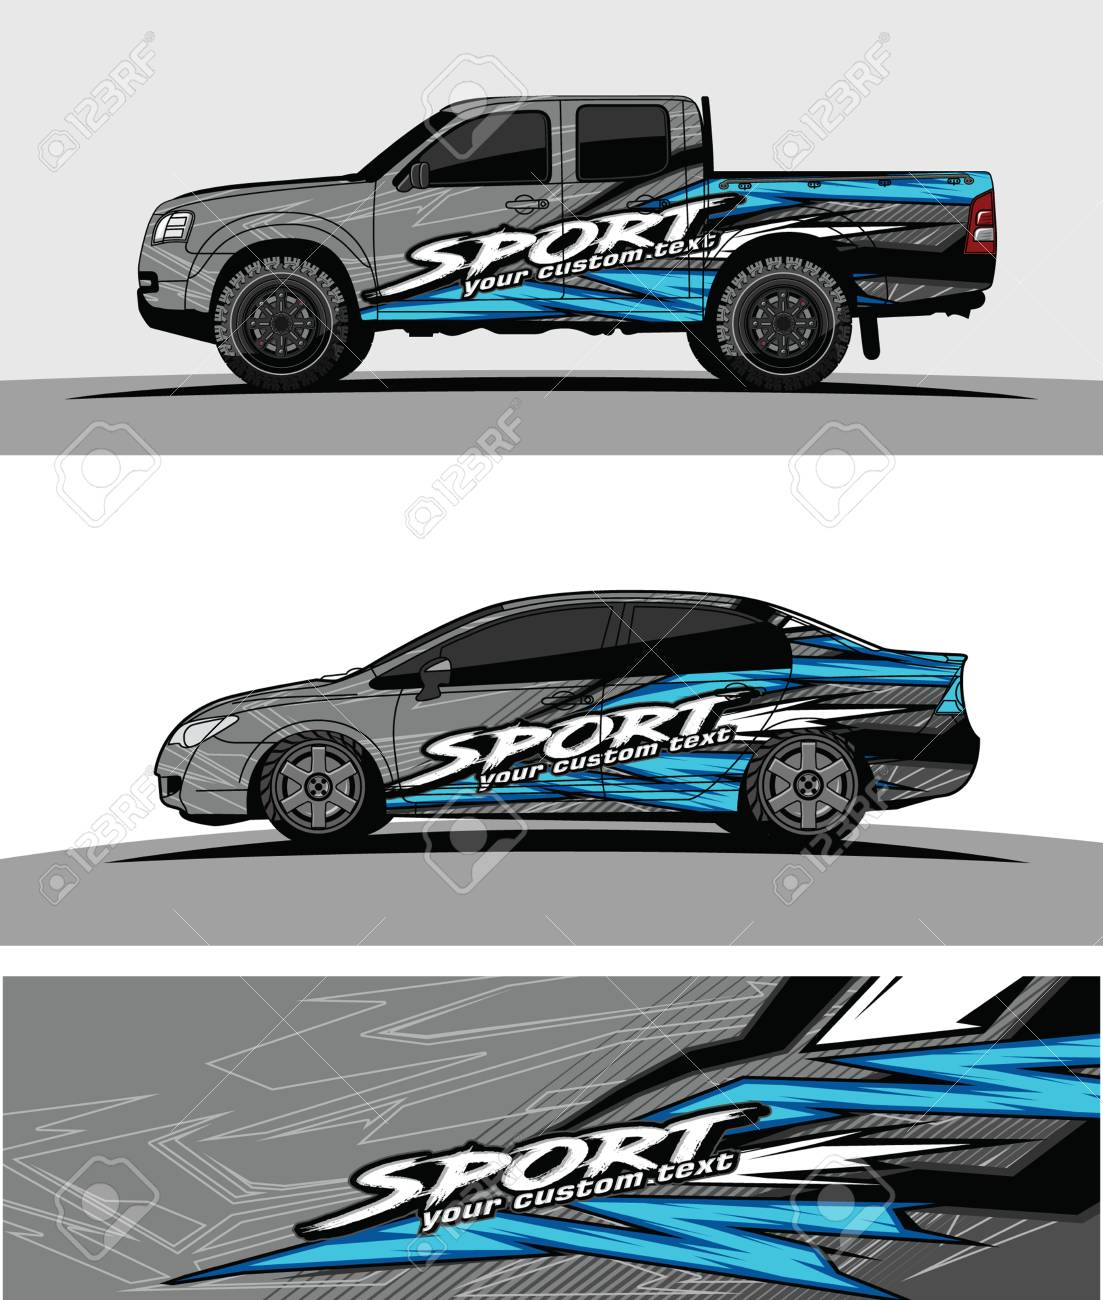 Pickup truck graphic vector abstract racing shape design for vehicle vinyl wrap background stock vector